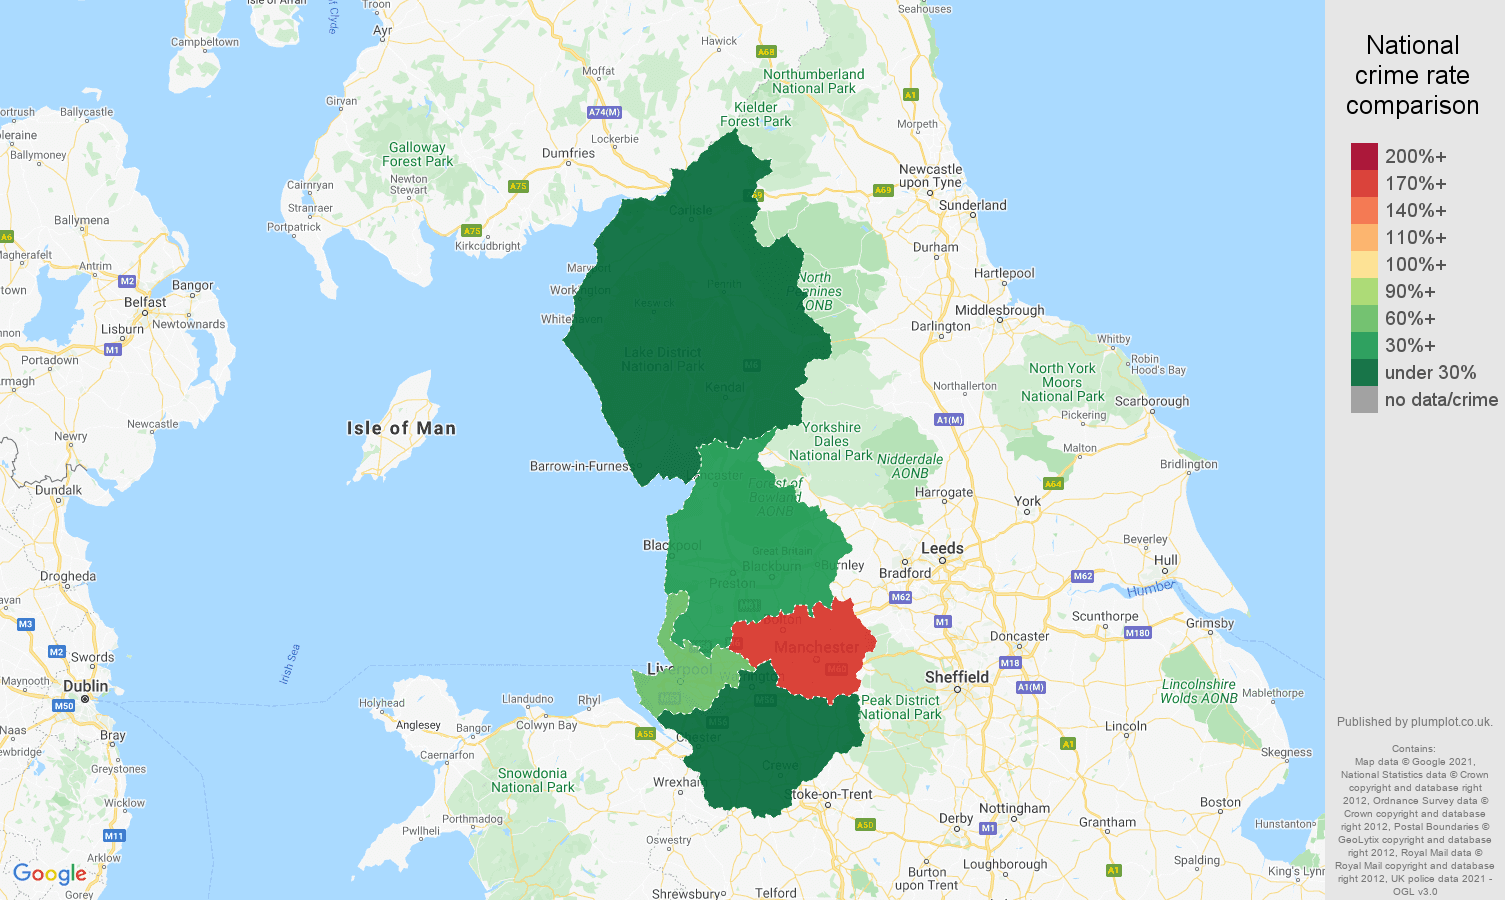 North West robbery crime rate comparison map